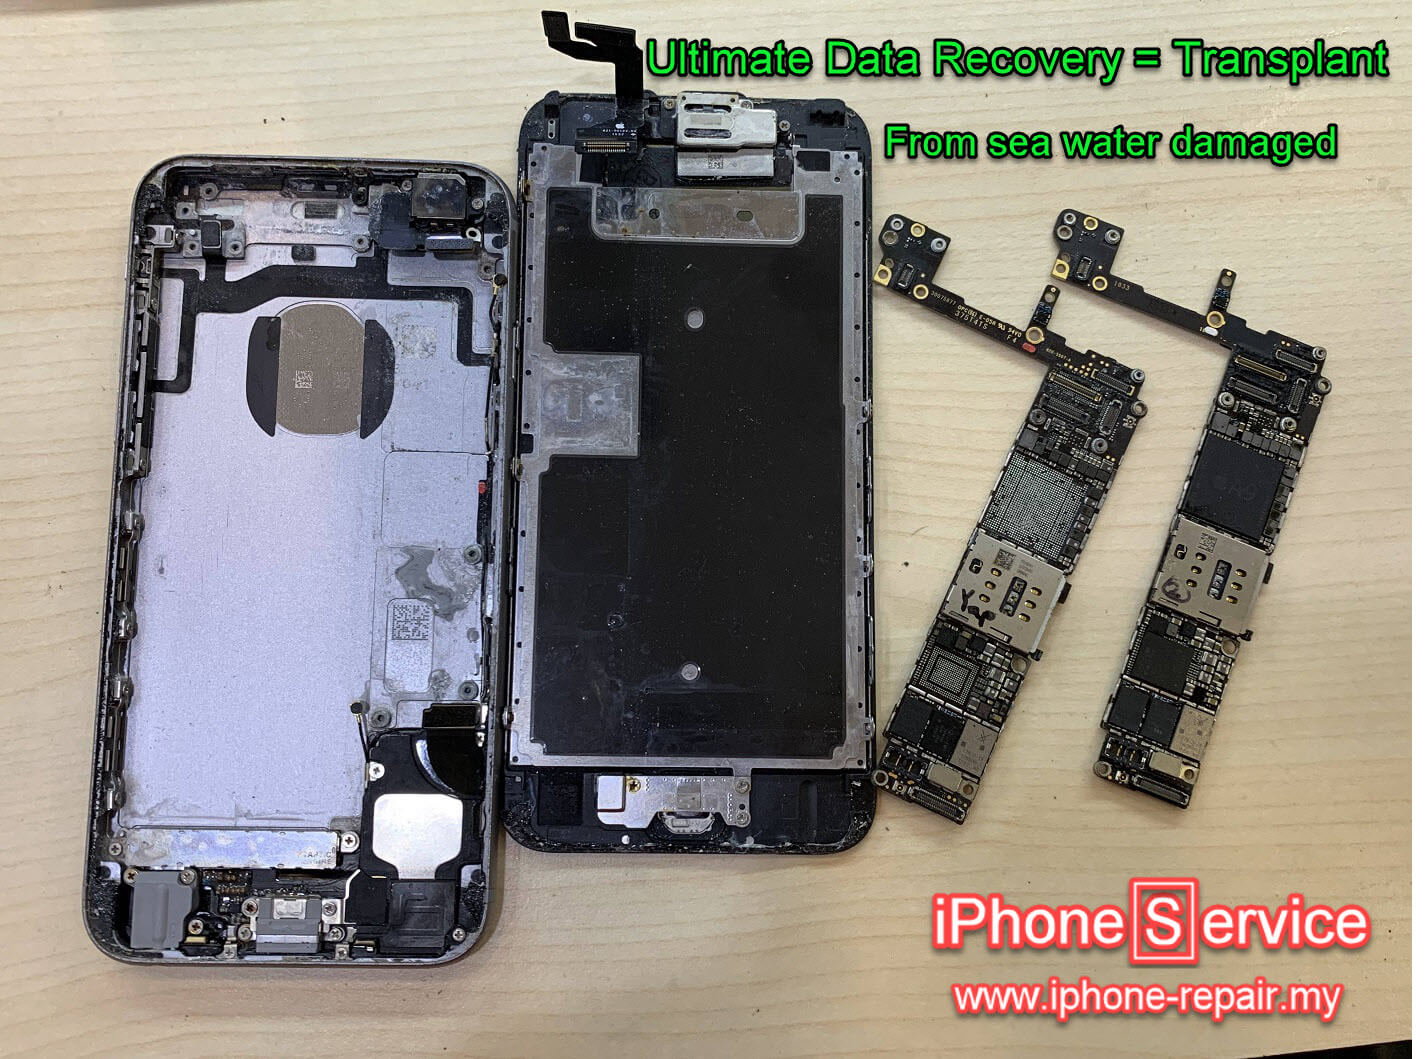 Ultimate iPhone Data Recovery transplant job